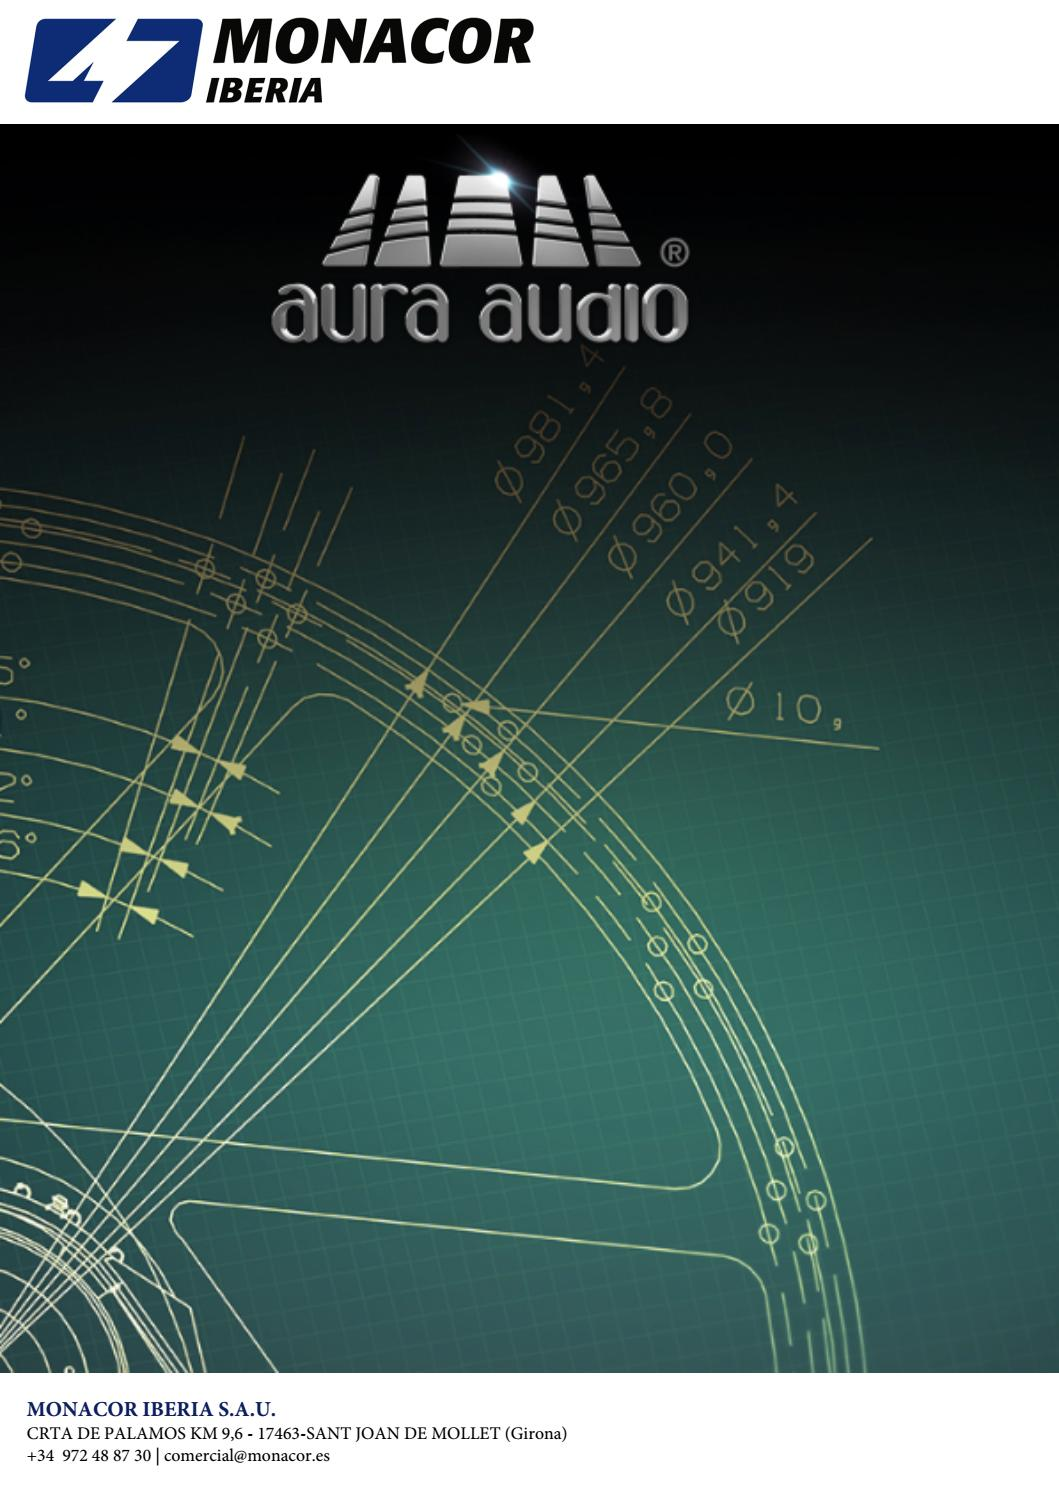 Catlogo Aura Audio By Fernando Martins Issuu Subwoofer Filter Crossover 11 90 Hz Frequency Circuit Free Picture